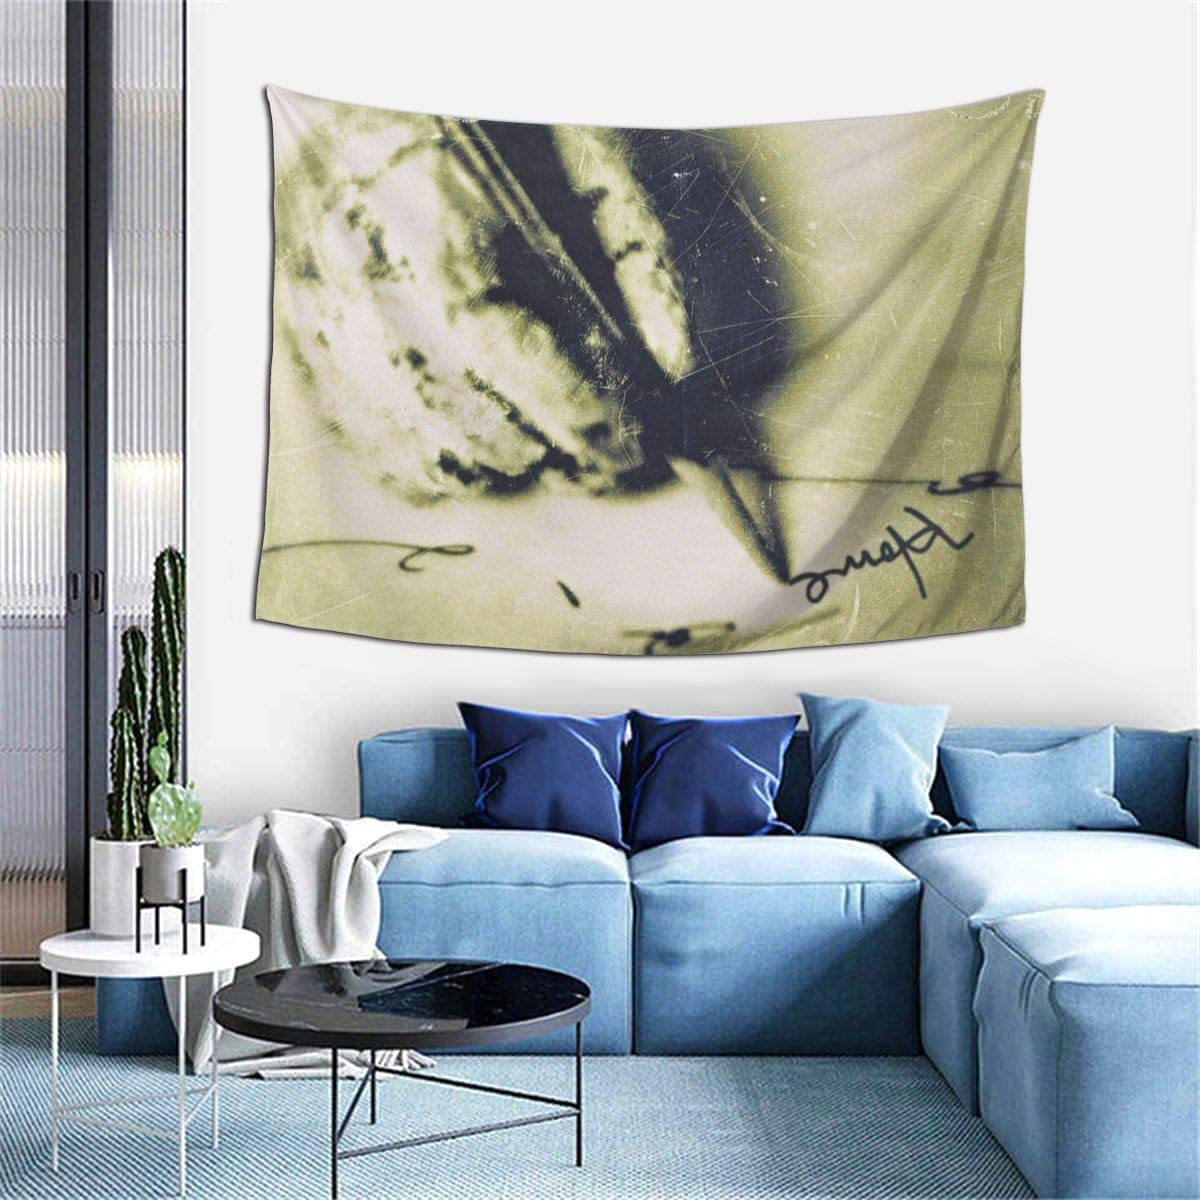 Sevendust Home Tapestry Wall Hanging Bedding Tapestry 3D Printed Living Room Bedroom Decoration Tapestry 60x40 Inches